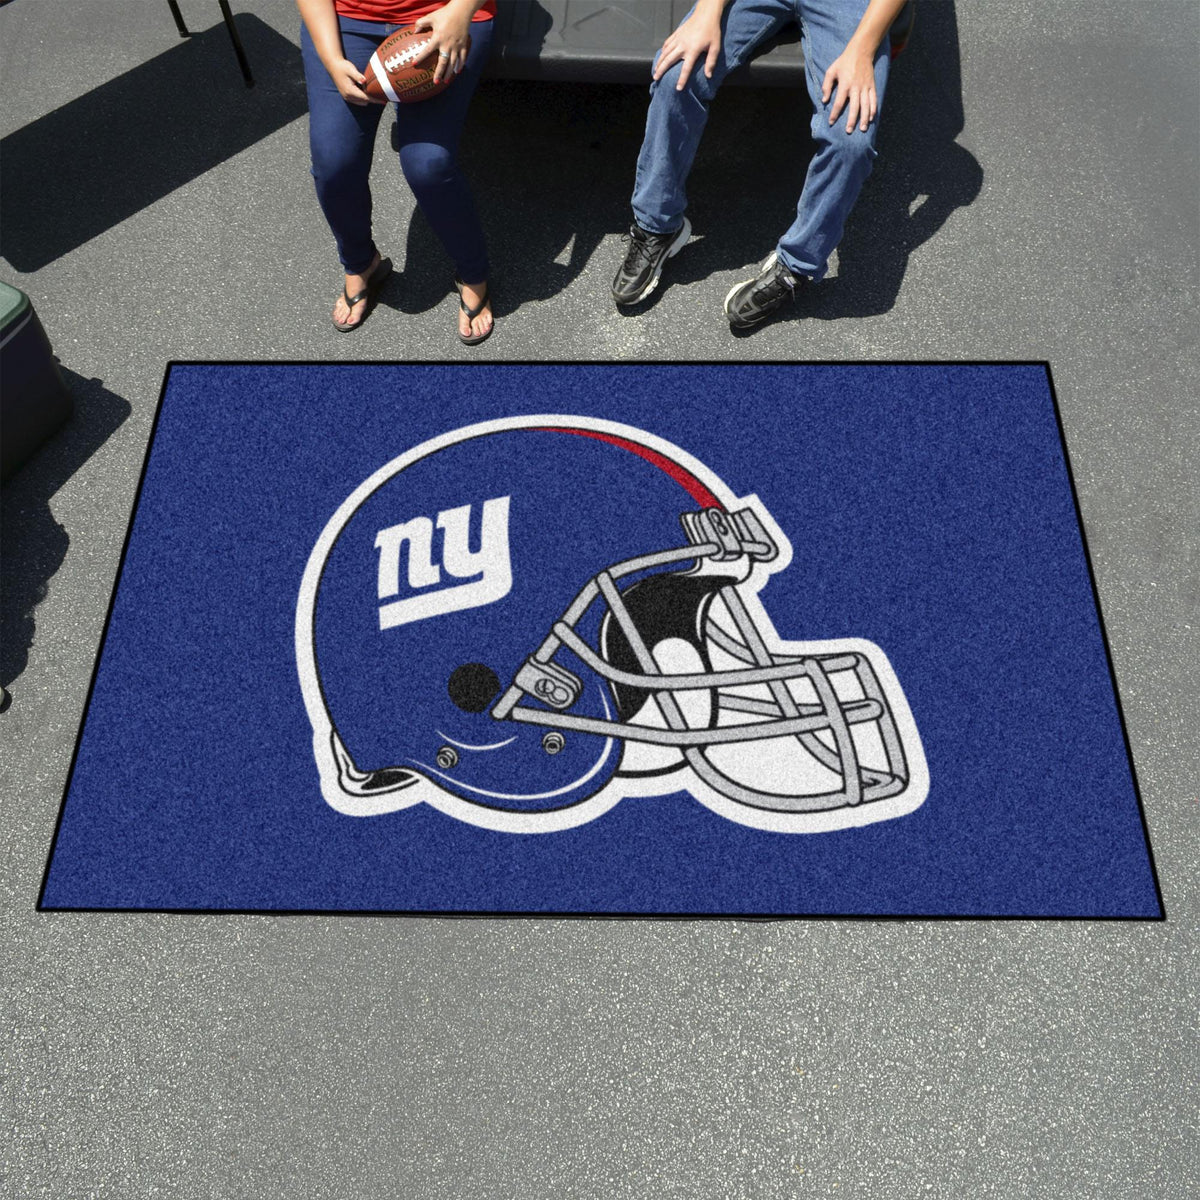 "NFL - Ulti-Mat, 59.5"" x 94.5"" NFL Mats, Rectangular Mats, Ulti-Mat, NFL, Home Fan Mats New York Giants"